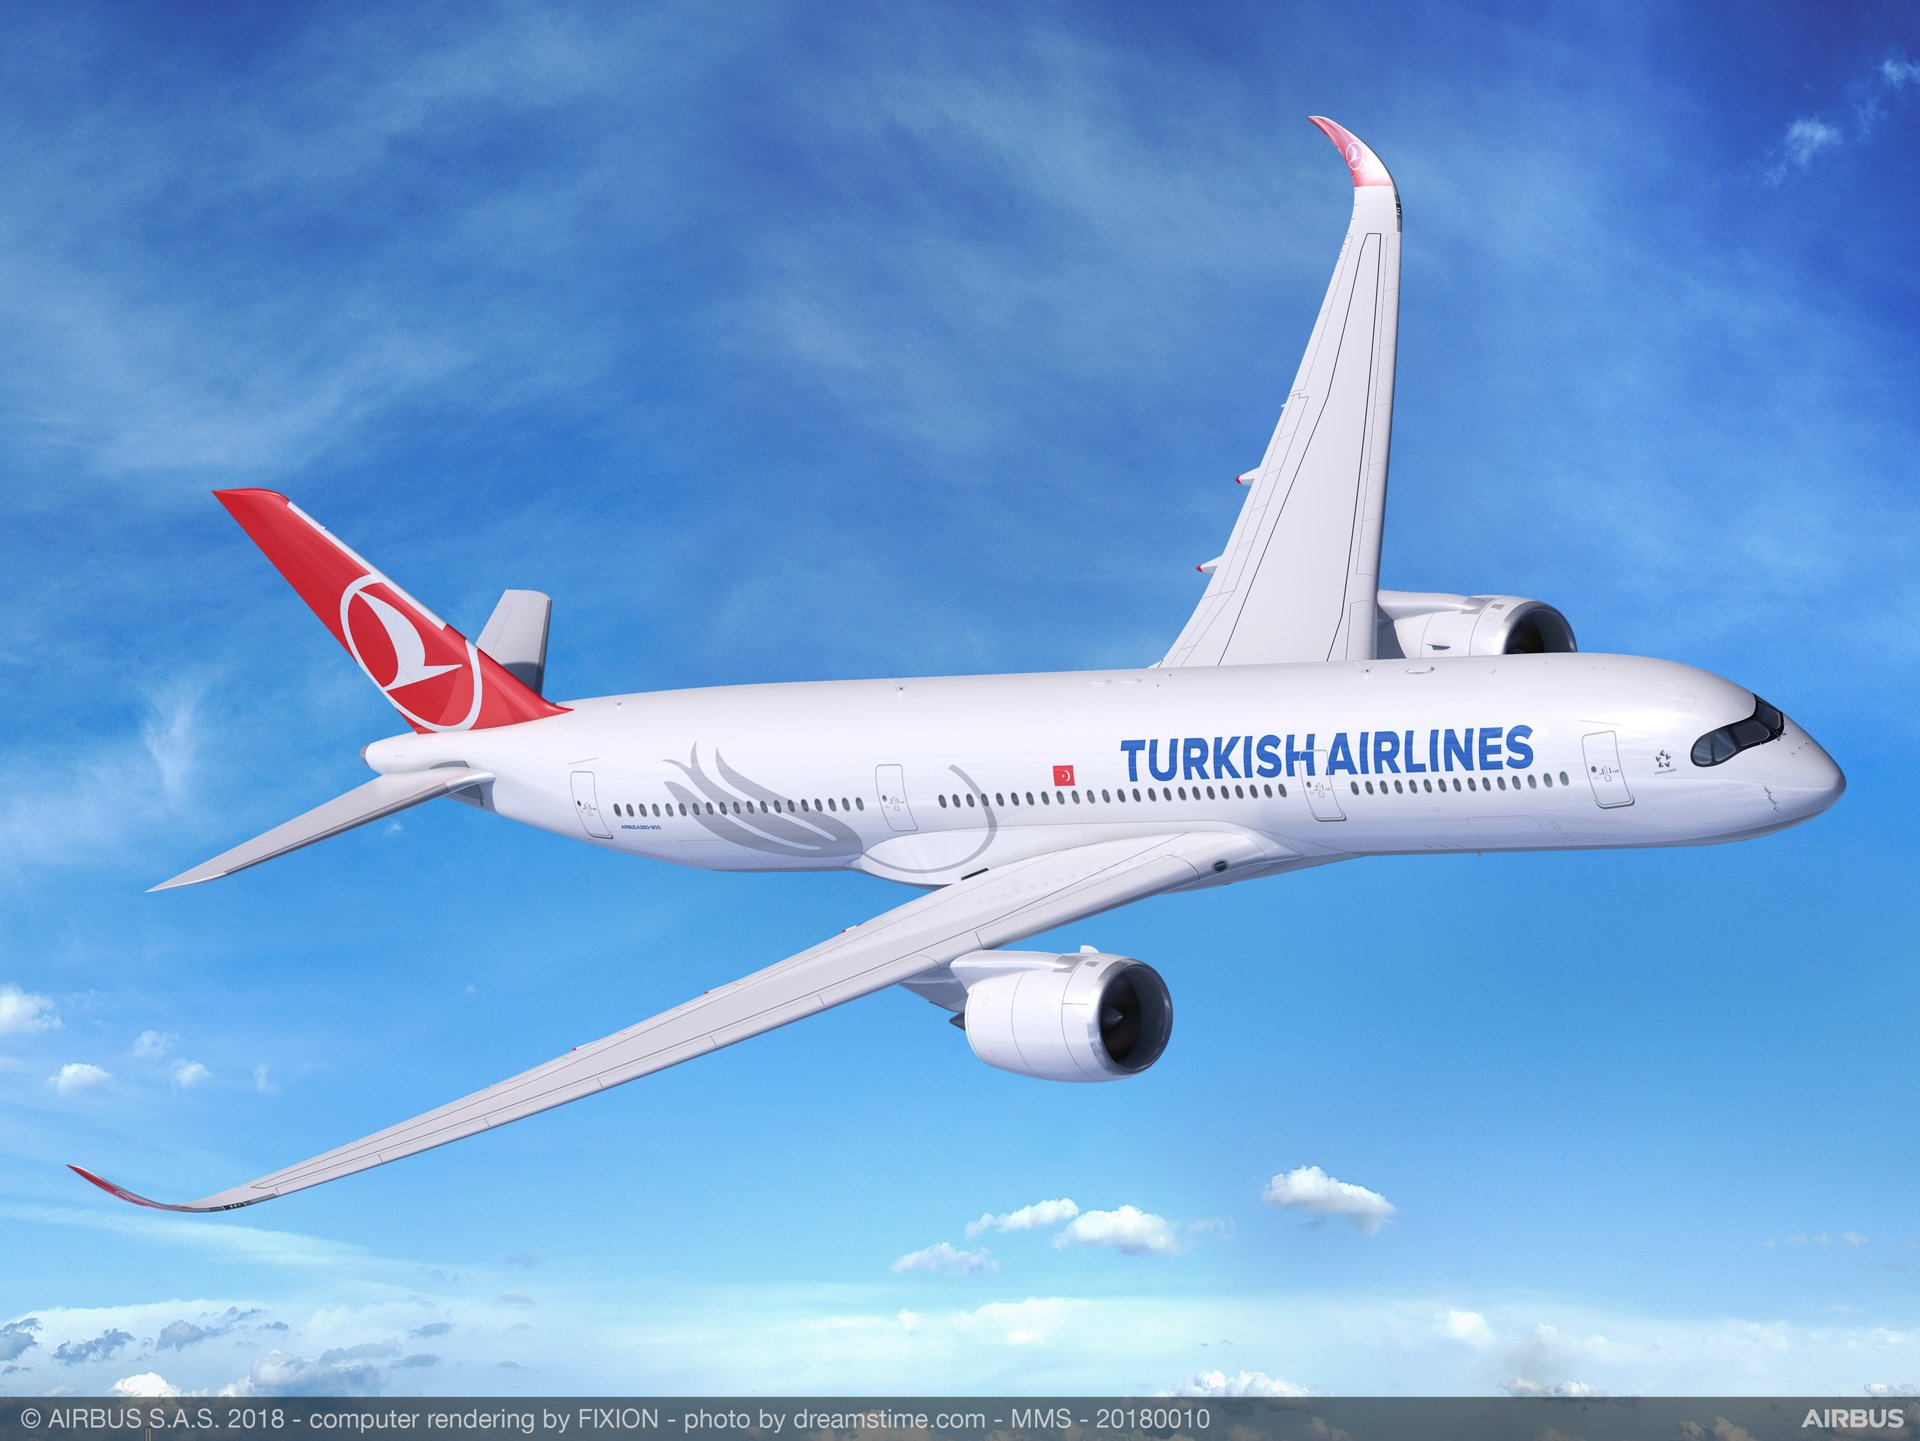 Turkish Airlines selects A350 XWB